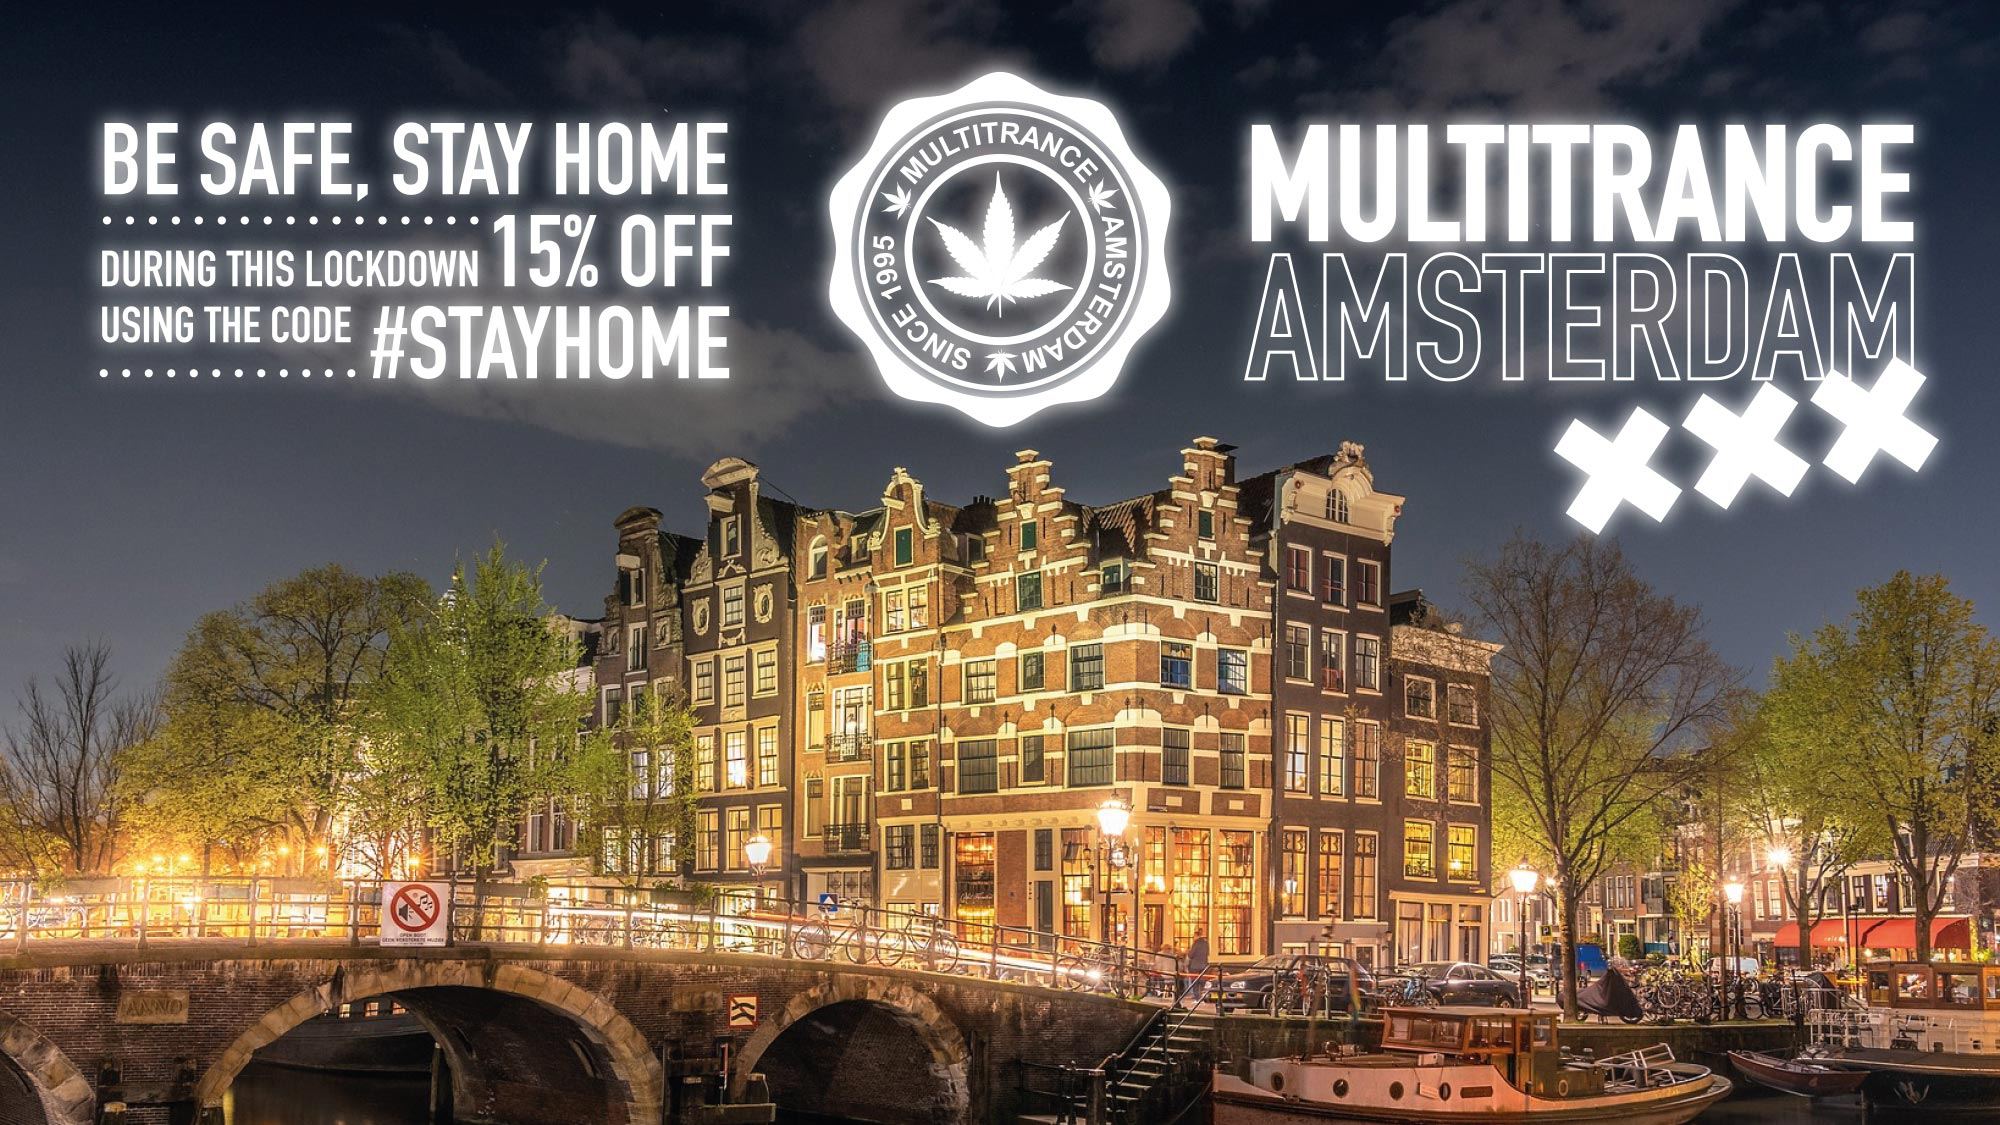 MultiTrance logo displayed in-between #StayHome promotion and MultiTrance Amsterdam title with an image of an iconic Amsterdam city building and bridge in the background